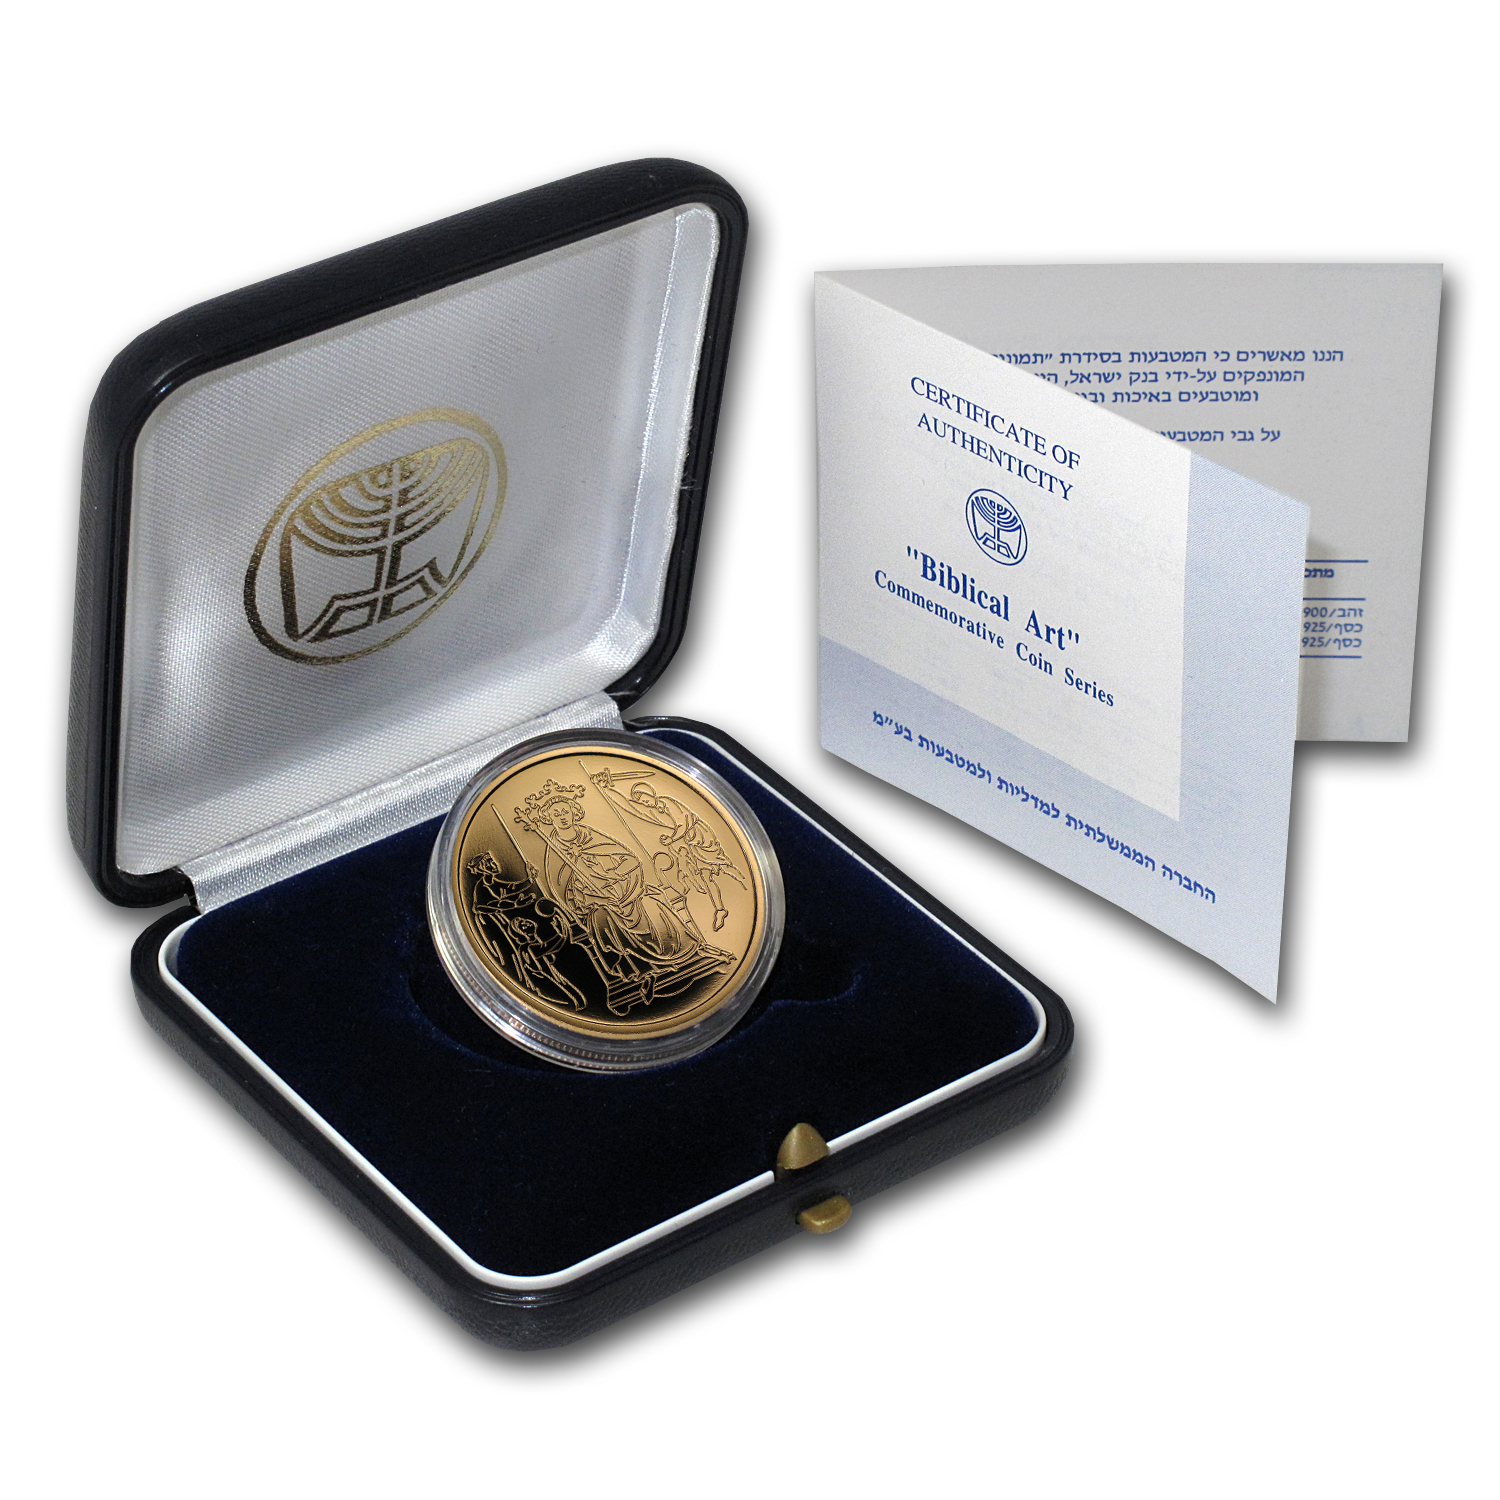 1995 Israel Solomon's Judgment 1/2 oz Proof Gold w/ box & coa